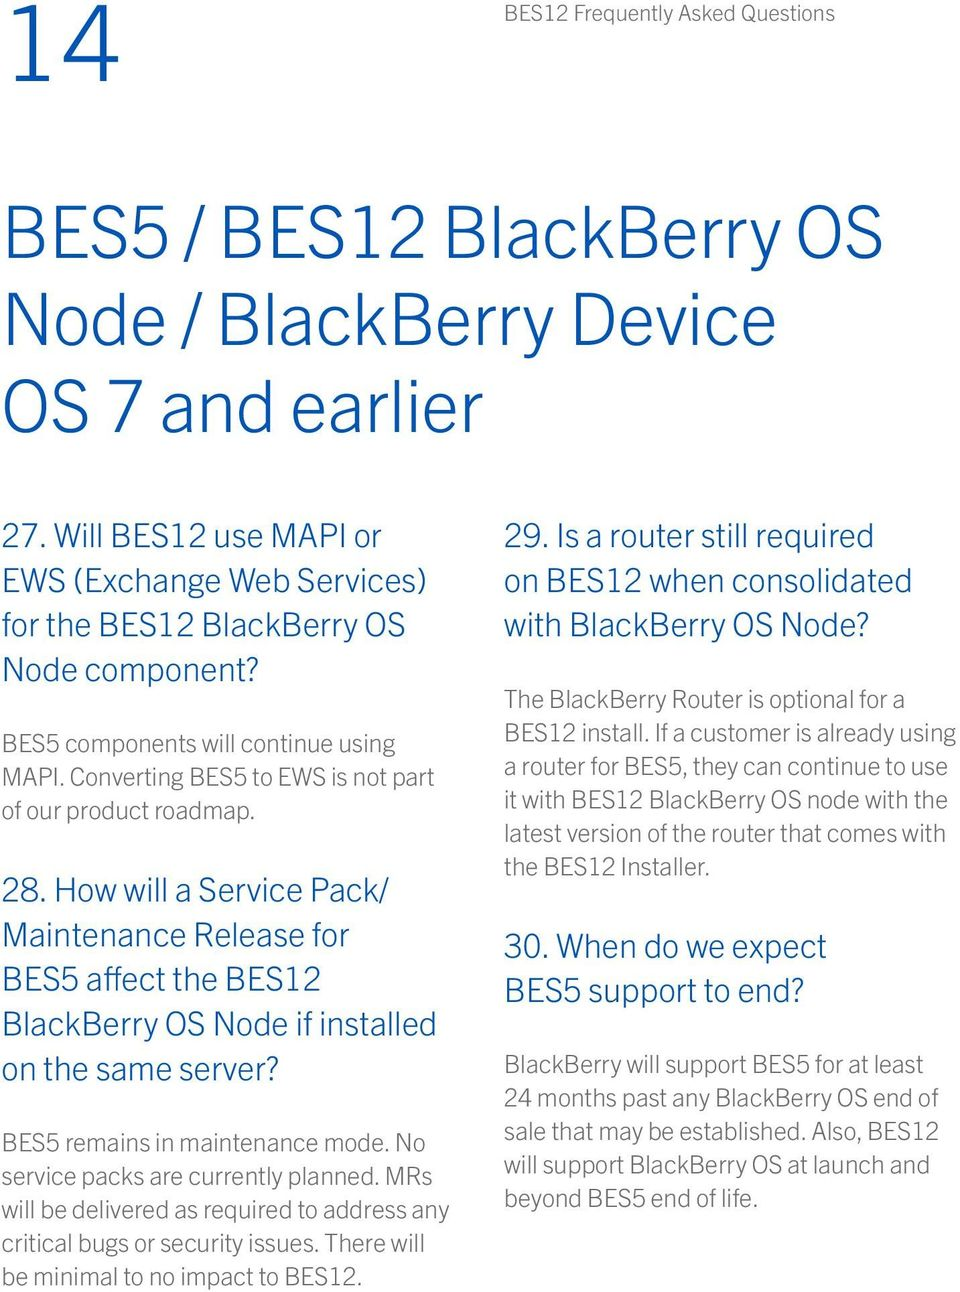 How will a Service Pack/ Maintenance Release for BES5 affect the BES12 BlackBerry OS Node if installed on the same server? BES5 remains in maintenance mode. No service packs are currently planned.